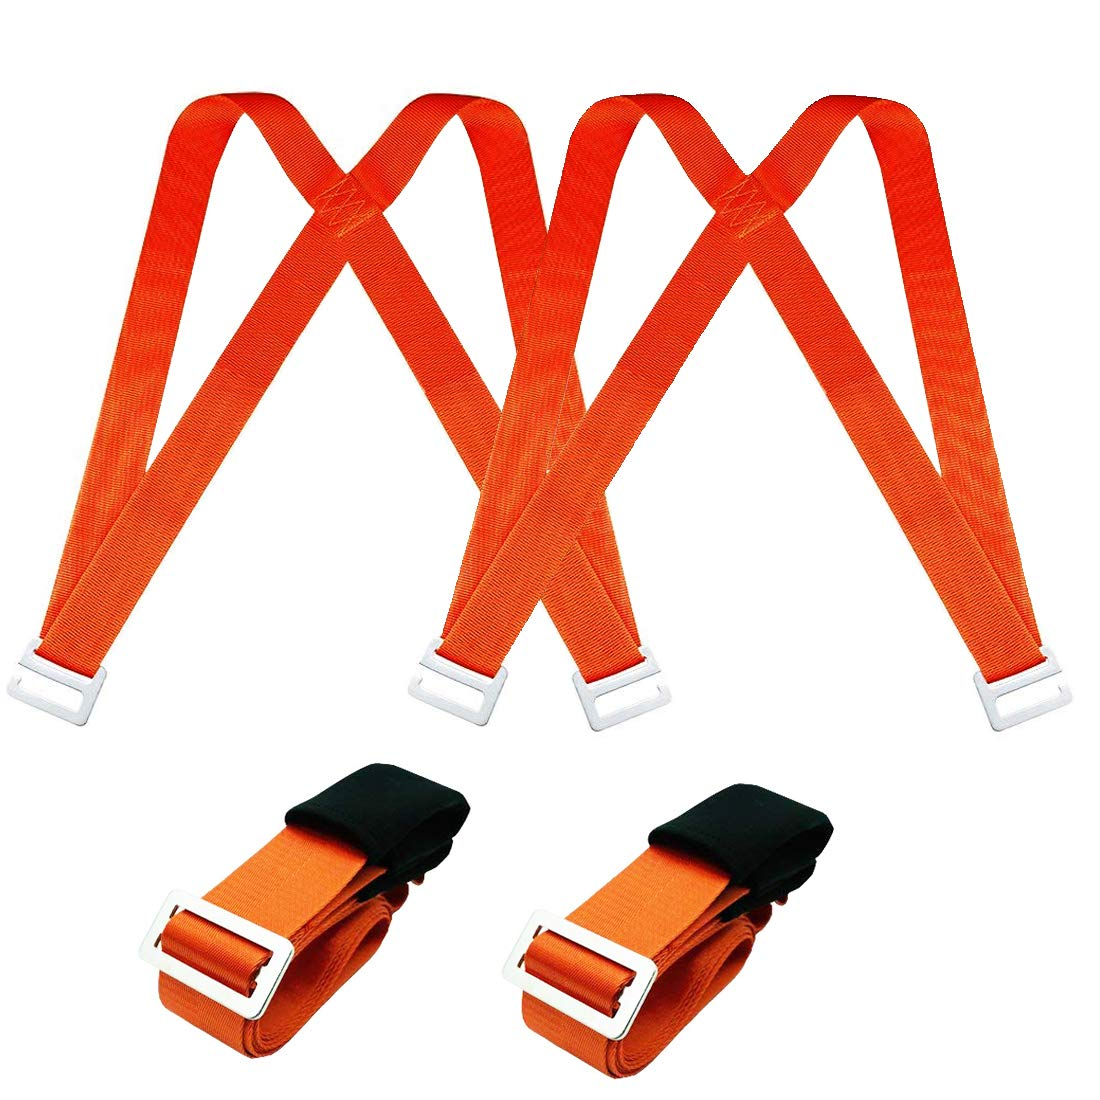 Moving Lifting Adjustable Straps Harnesses - Easy Move Lift Carry Furniture Appliances Heavy Objects Without Back Pain, Secure for 2 Person Movers